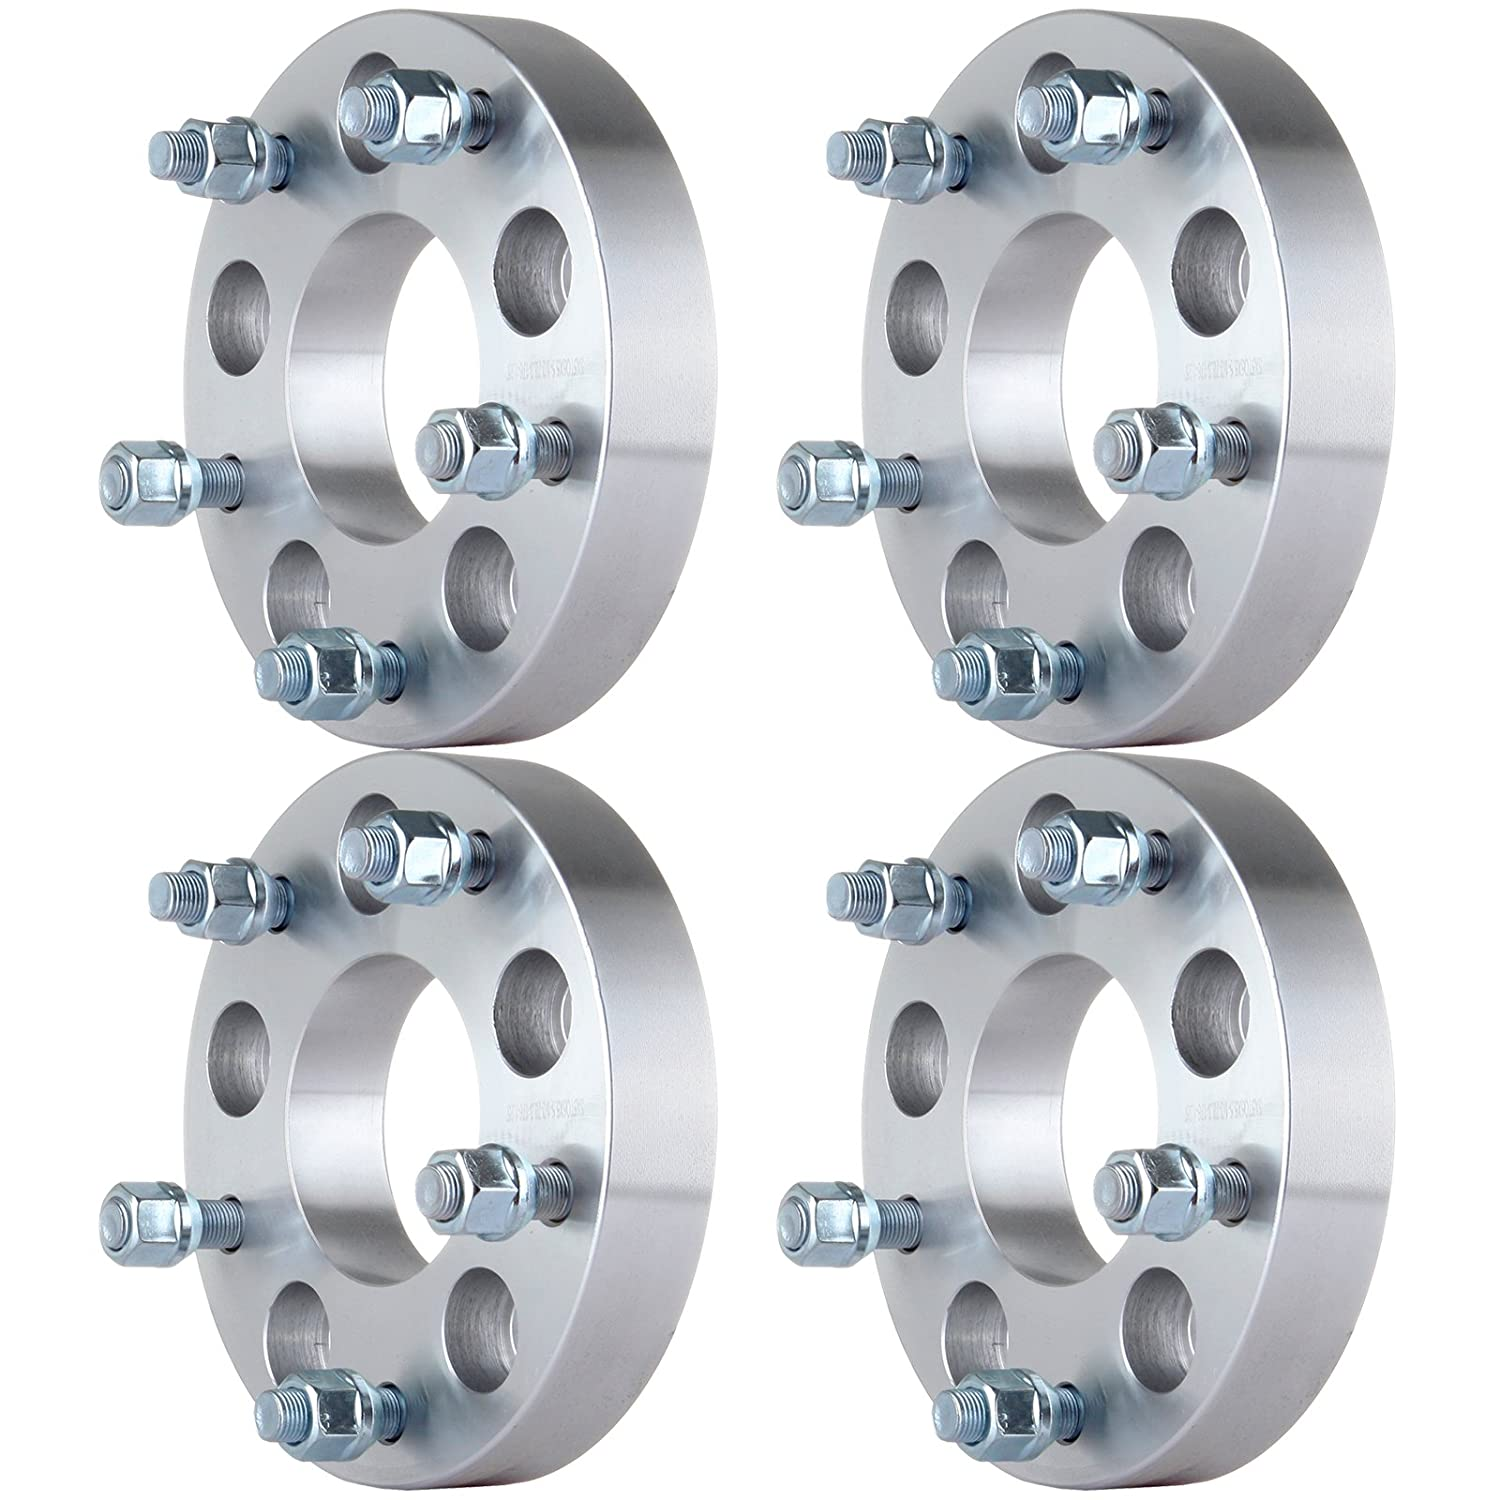 5x127 to 5x139.7 Wheel Spacers Fits GMC Buick Chevrolet Tahoe with 1//2 Studs ECCPP 5 lug wheel spacers adapters 4PCS 1.25 5x5 to 5x5.5